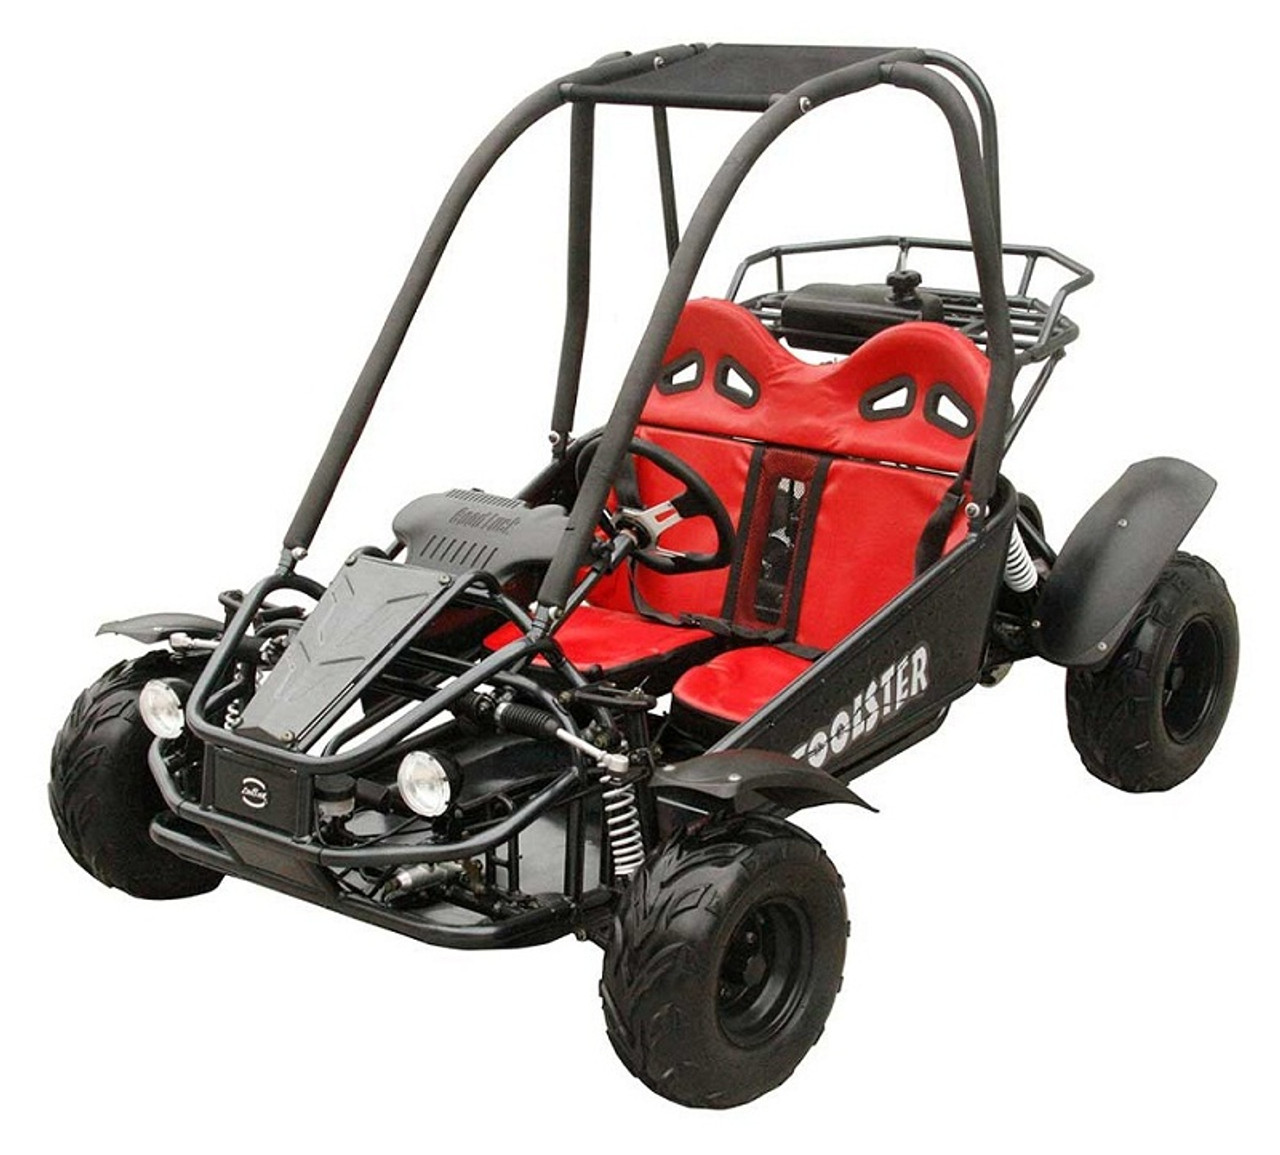 Coolster GK-6125 , 125cc Fully Automatic Mini Go Kart